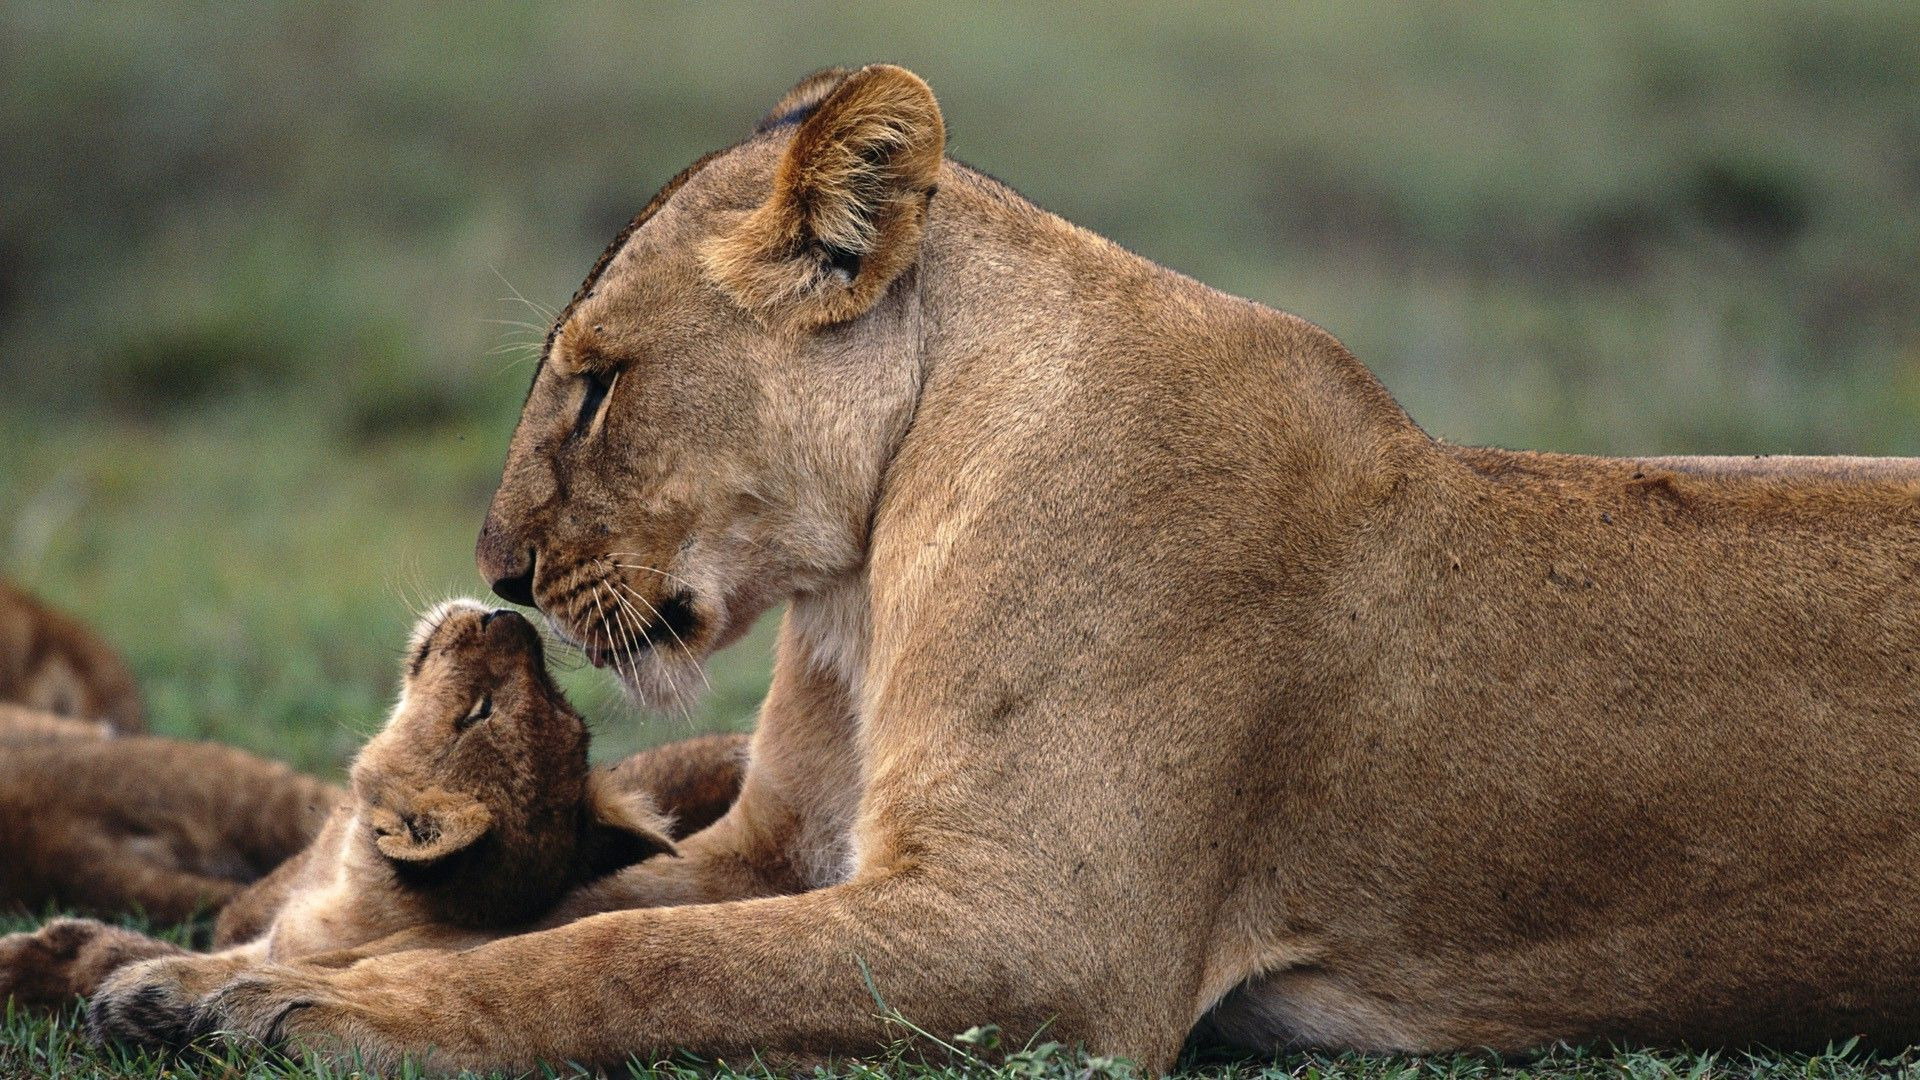 download hd wallpapers of 35975-lion, animals, baby animals. free